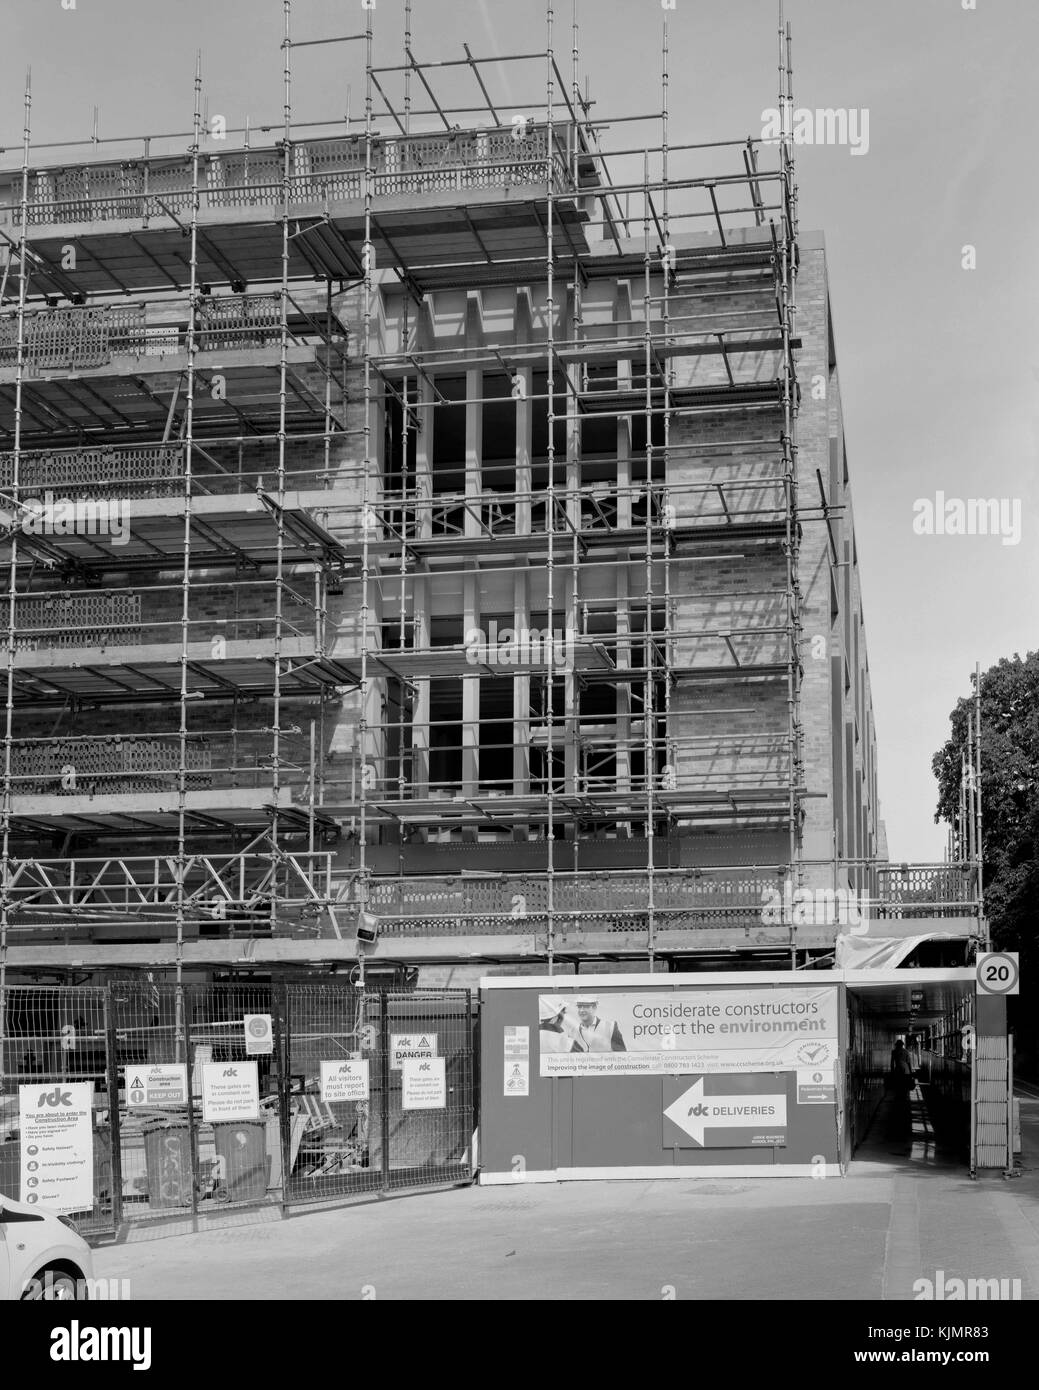 Judge Business School construction project on the Old Addenbrooke's Site, Cambridge - Stock Image